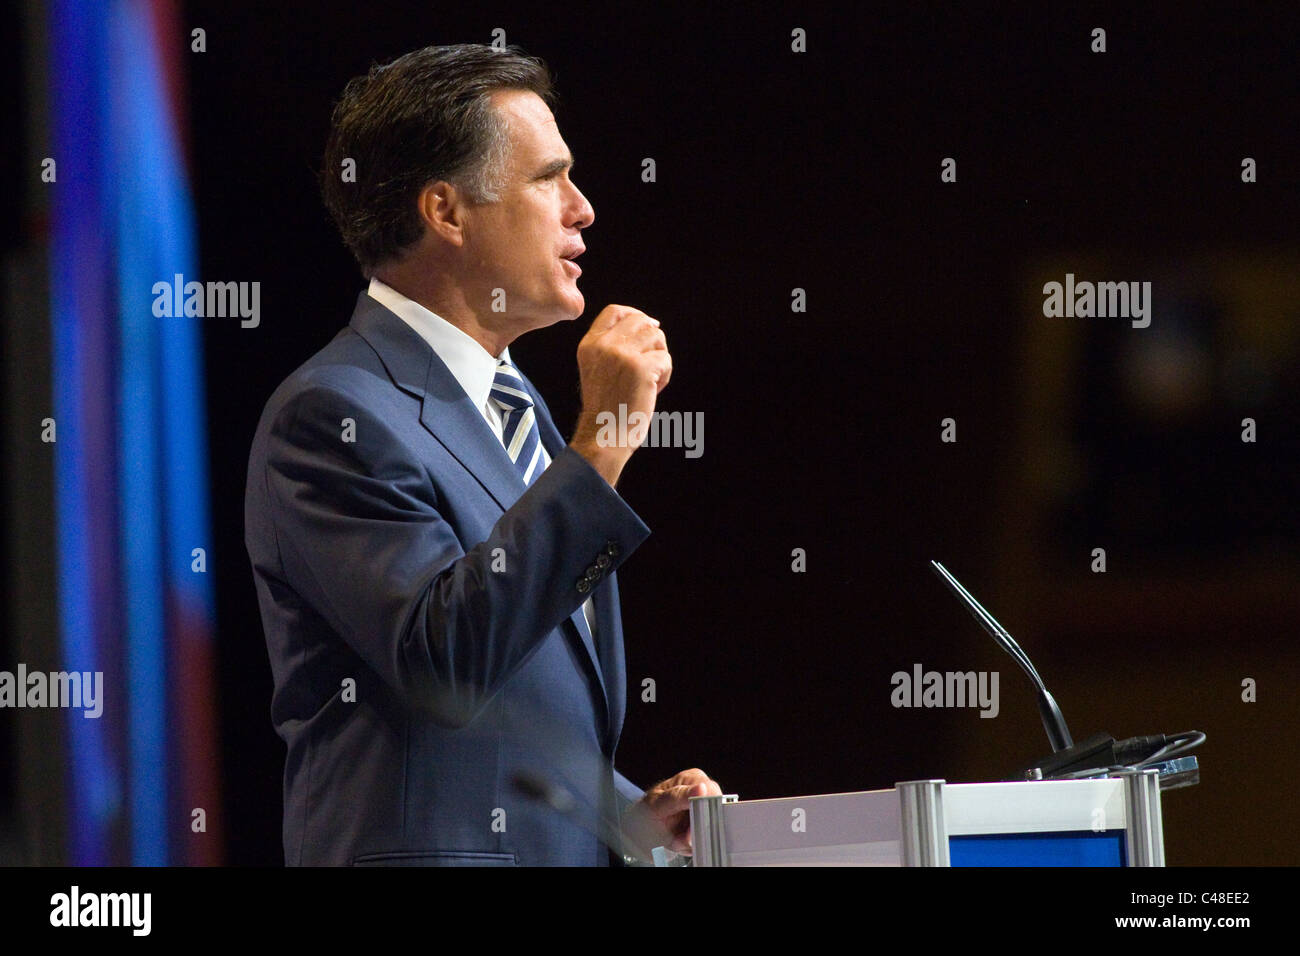 Republican Presidential candidate Mitt Romney at the  CPAC conference in Washington, DC - Stock Image